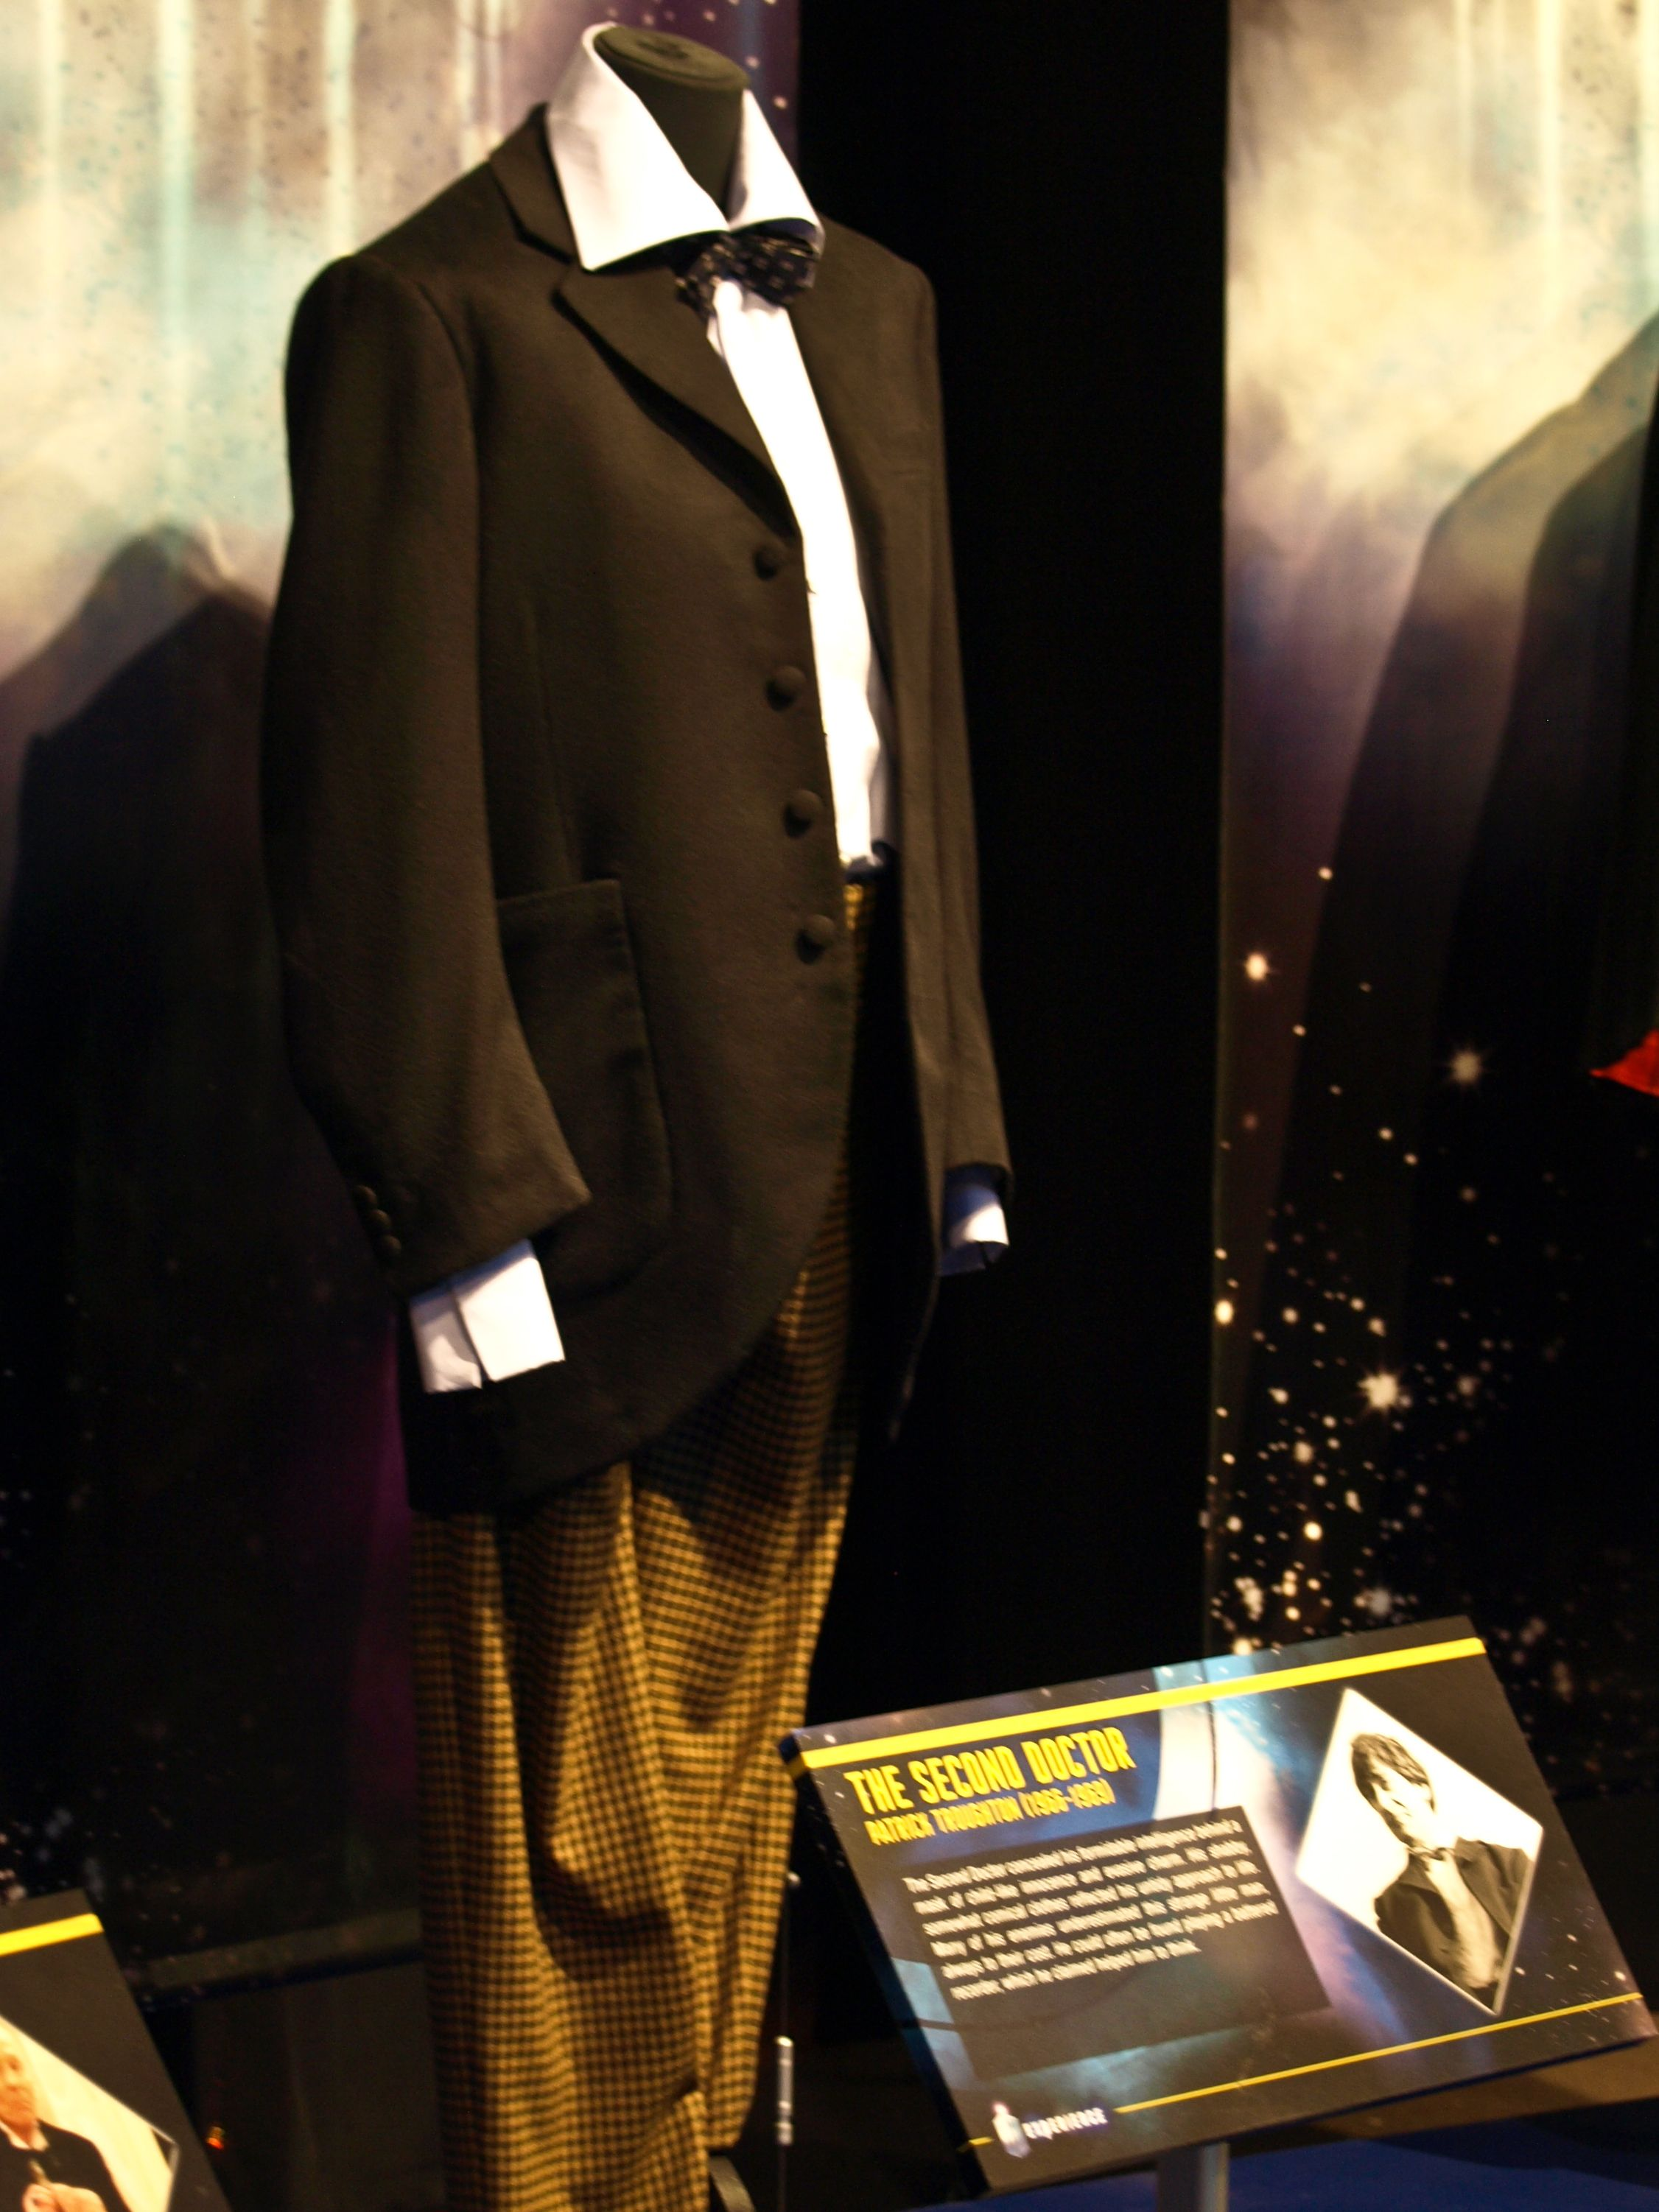 Second Doctor Costume & Second Doctor Costume | Dress Up | Pinterest | Doctor costume and ...